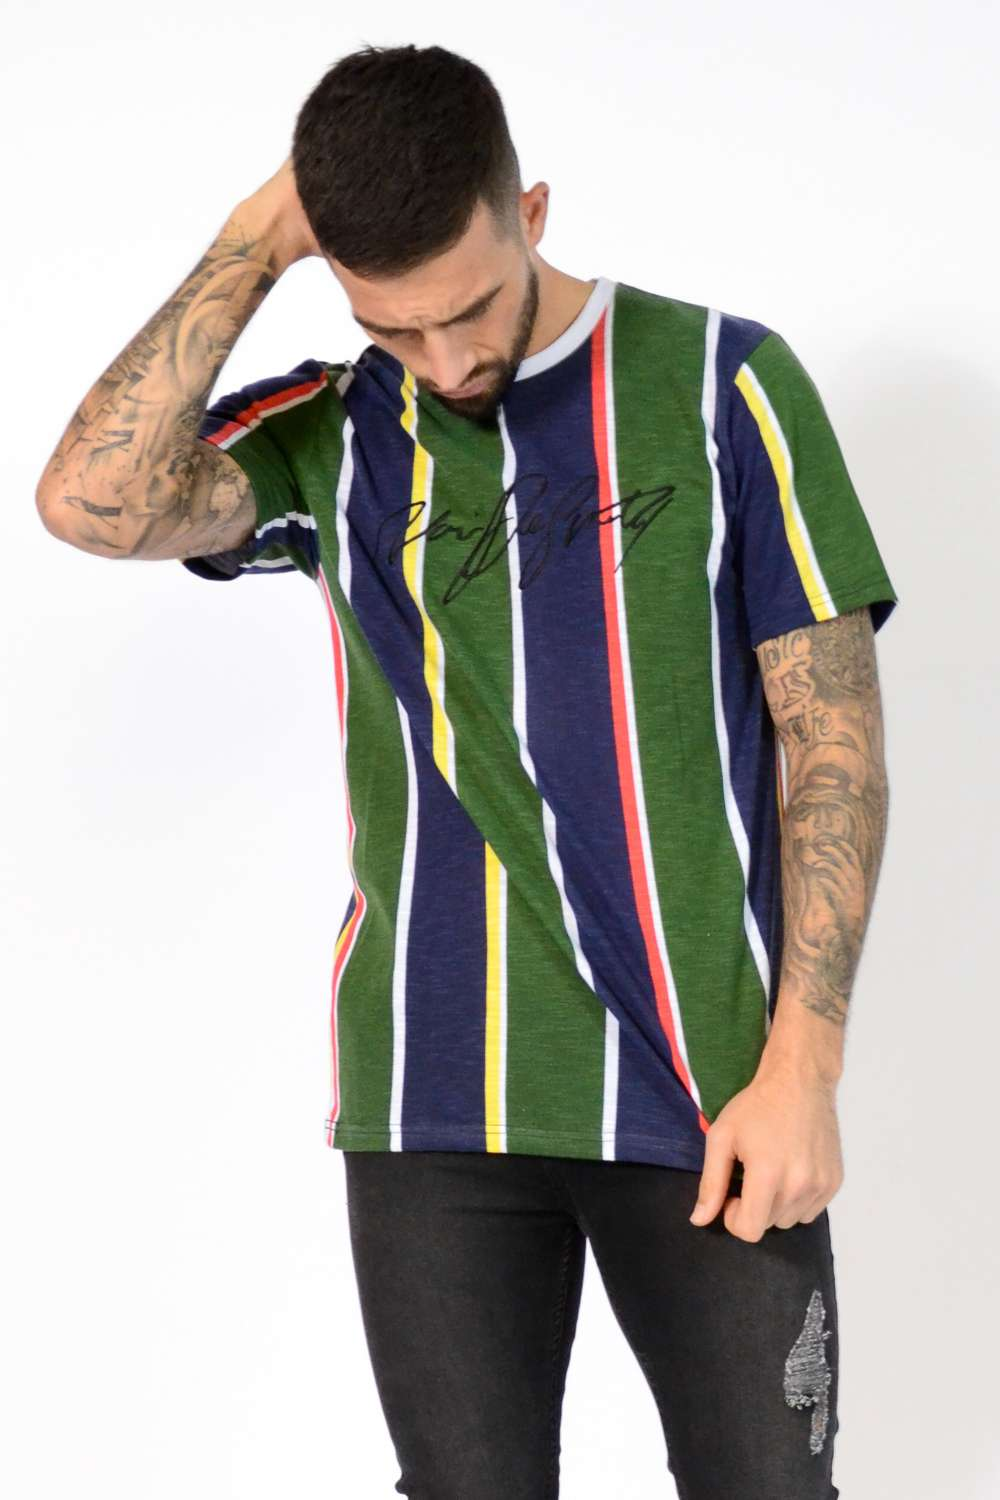 Noir De Sportif Terrace Striped T-Shirt - Navy/Green - 2